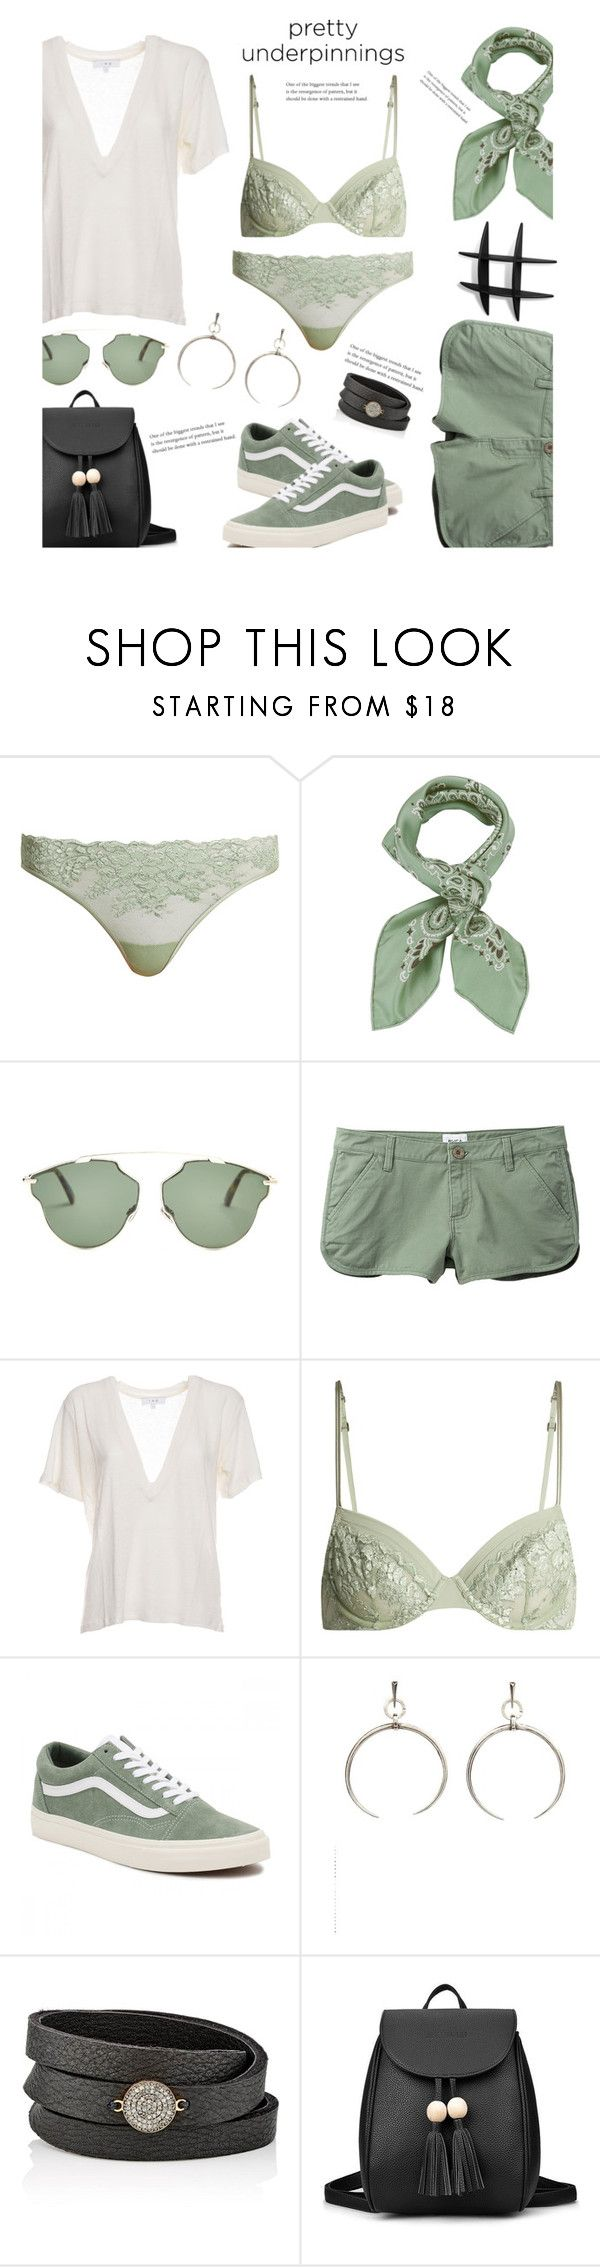 """There she goes Out in the sunshine'"" by dianefantasy ❤ liked on Polyvore featuring La Perla, Manipuri, Christian Dior, RVCA, IRO, Vans, Luv Aj, Feathered Soul, polyvorecommunity and polyvoreeditorial"